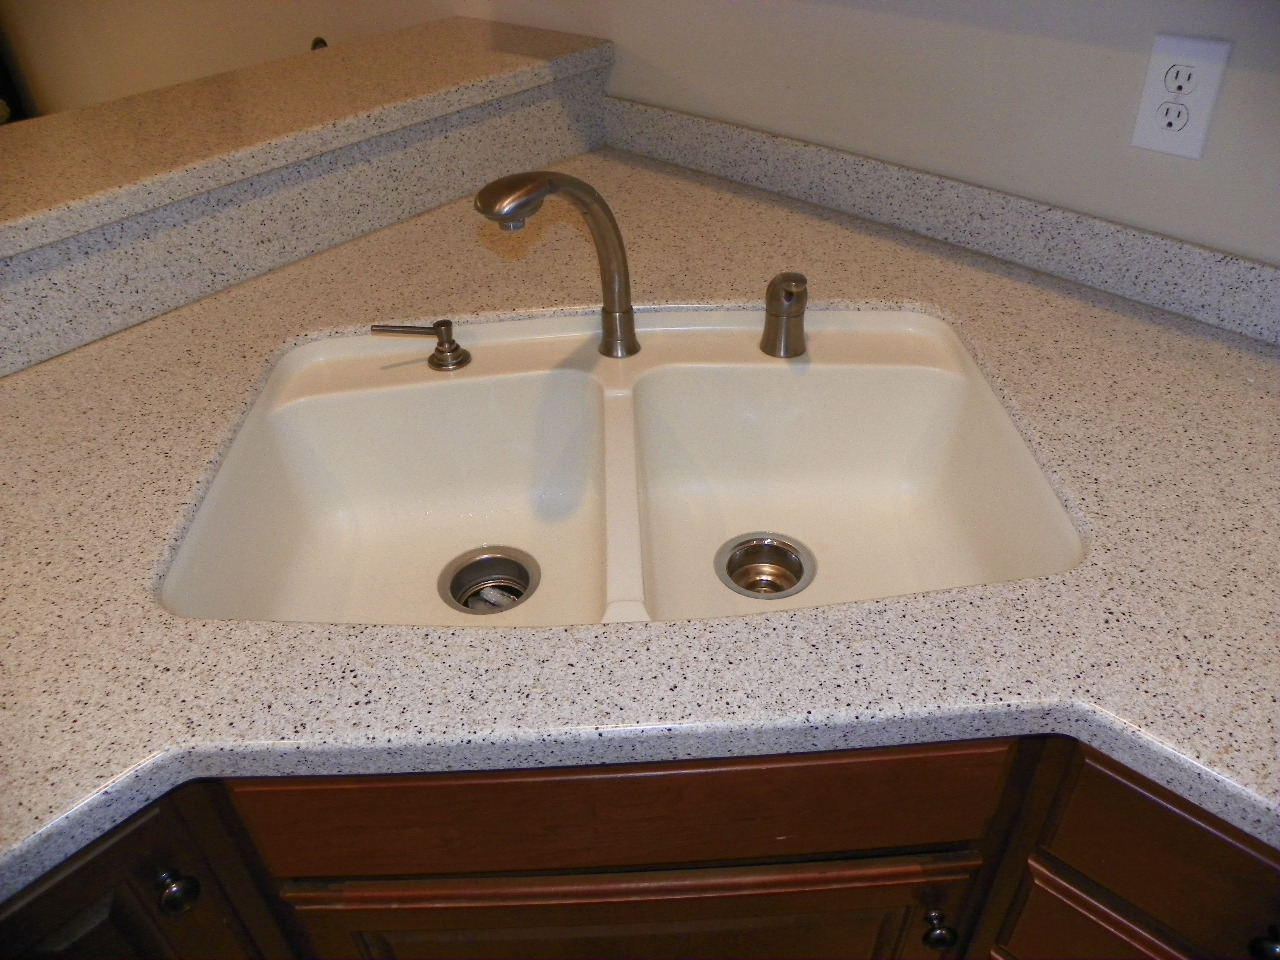 The Solid Surface Countertop Repair Blog Changing From One Solid Surface Sink To A Different Model Of Solid Surface Sink